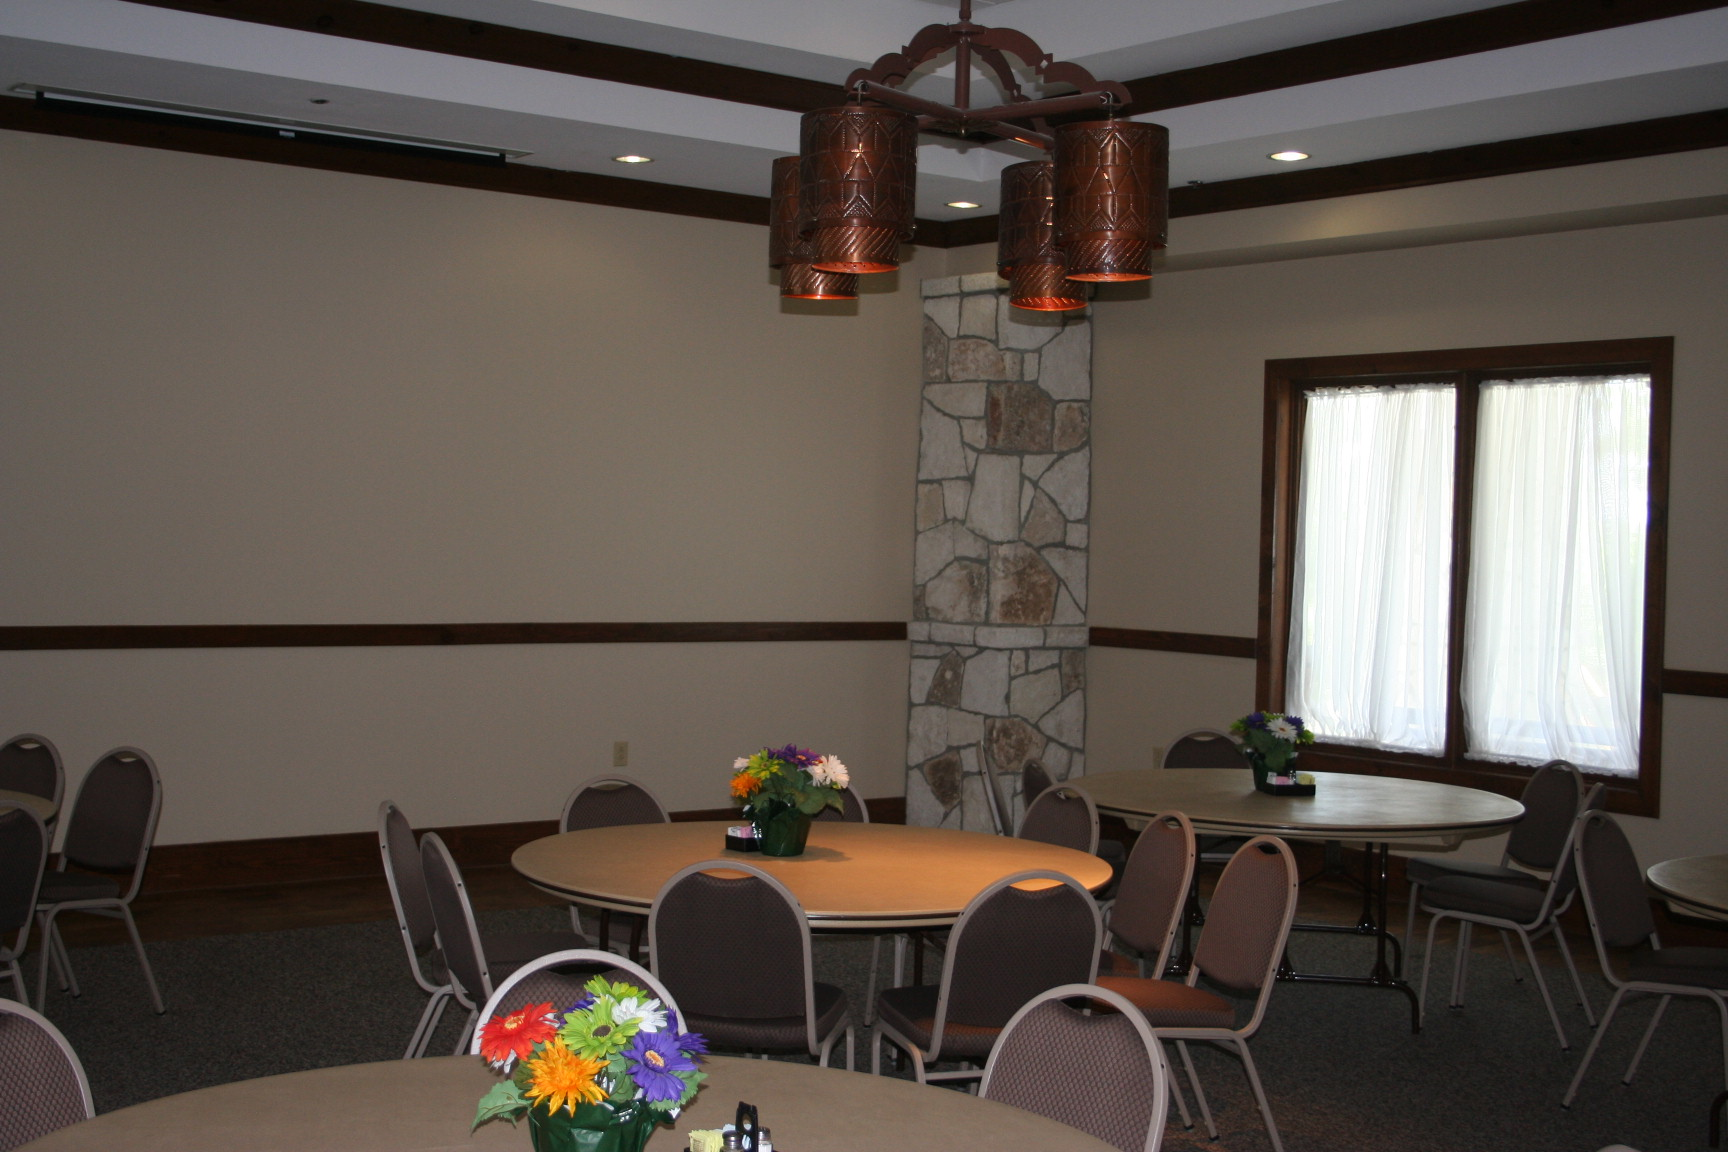 Tom Allen Private Dining Room.JPG